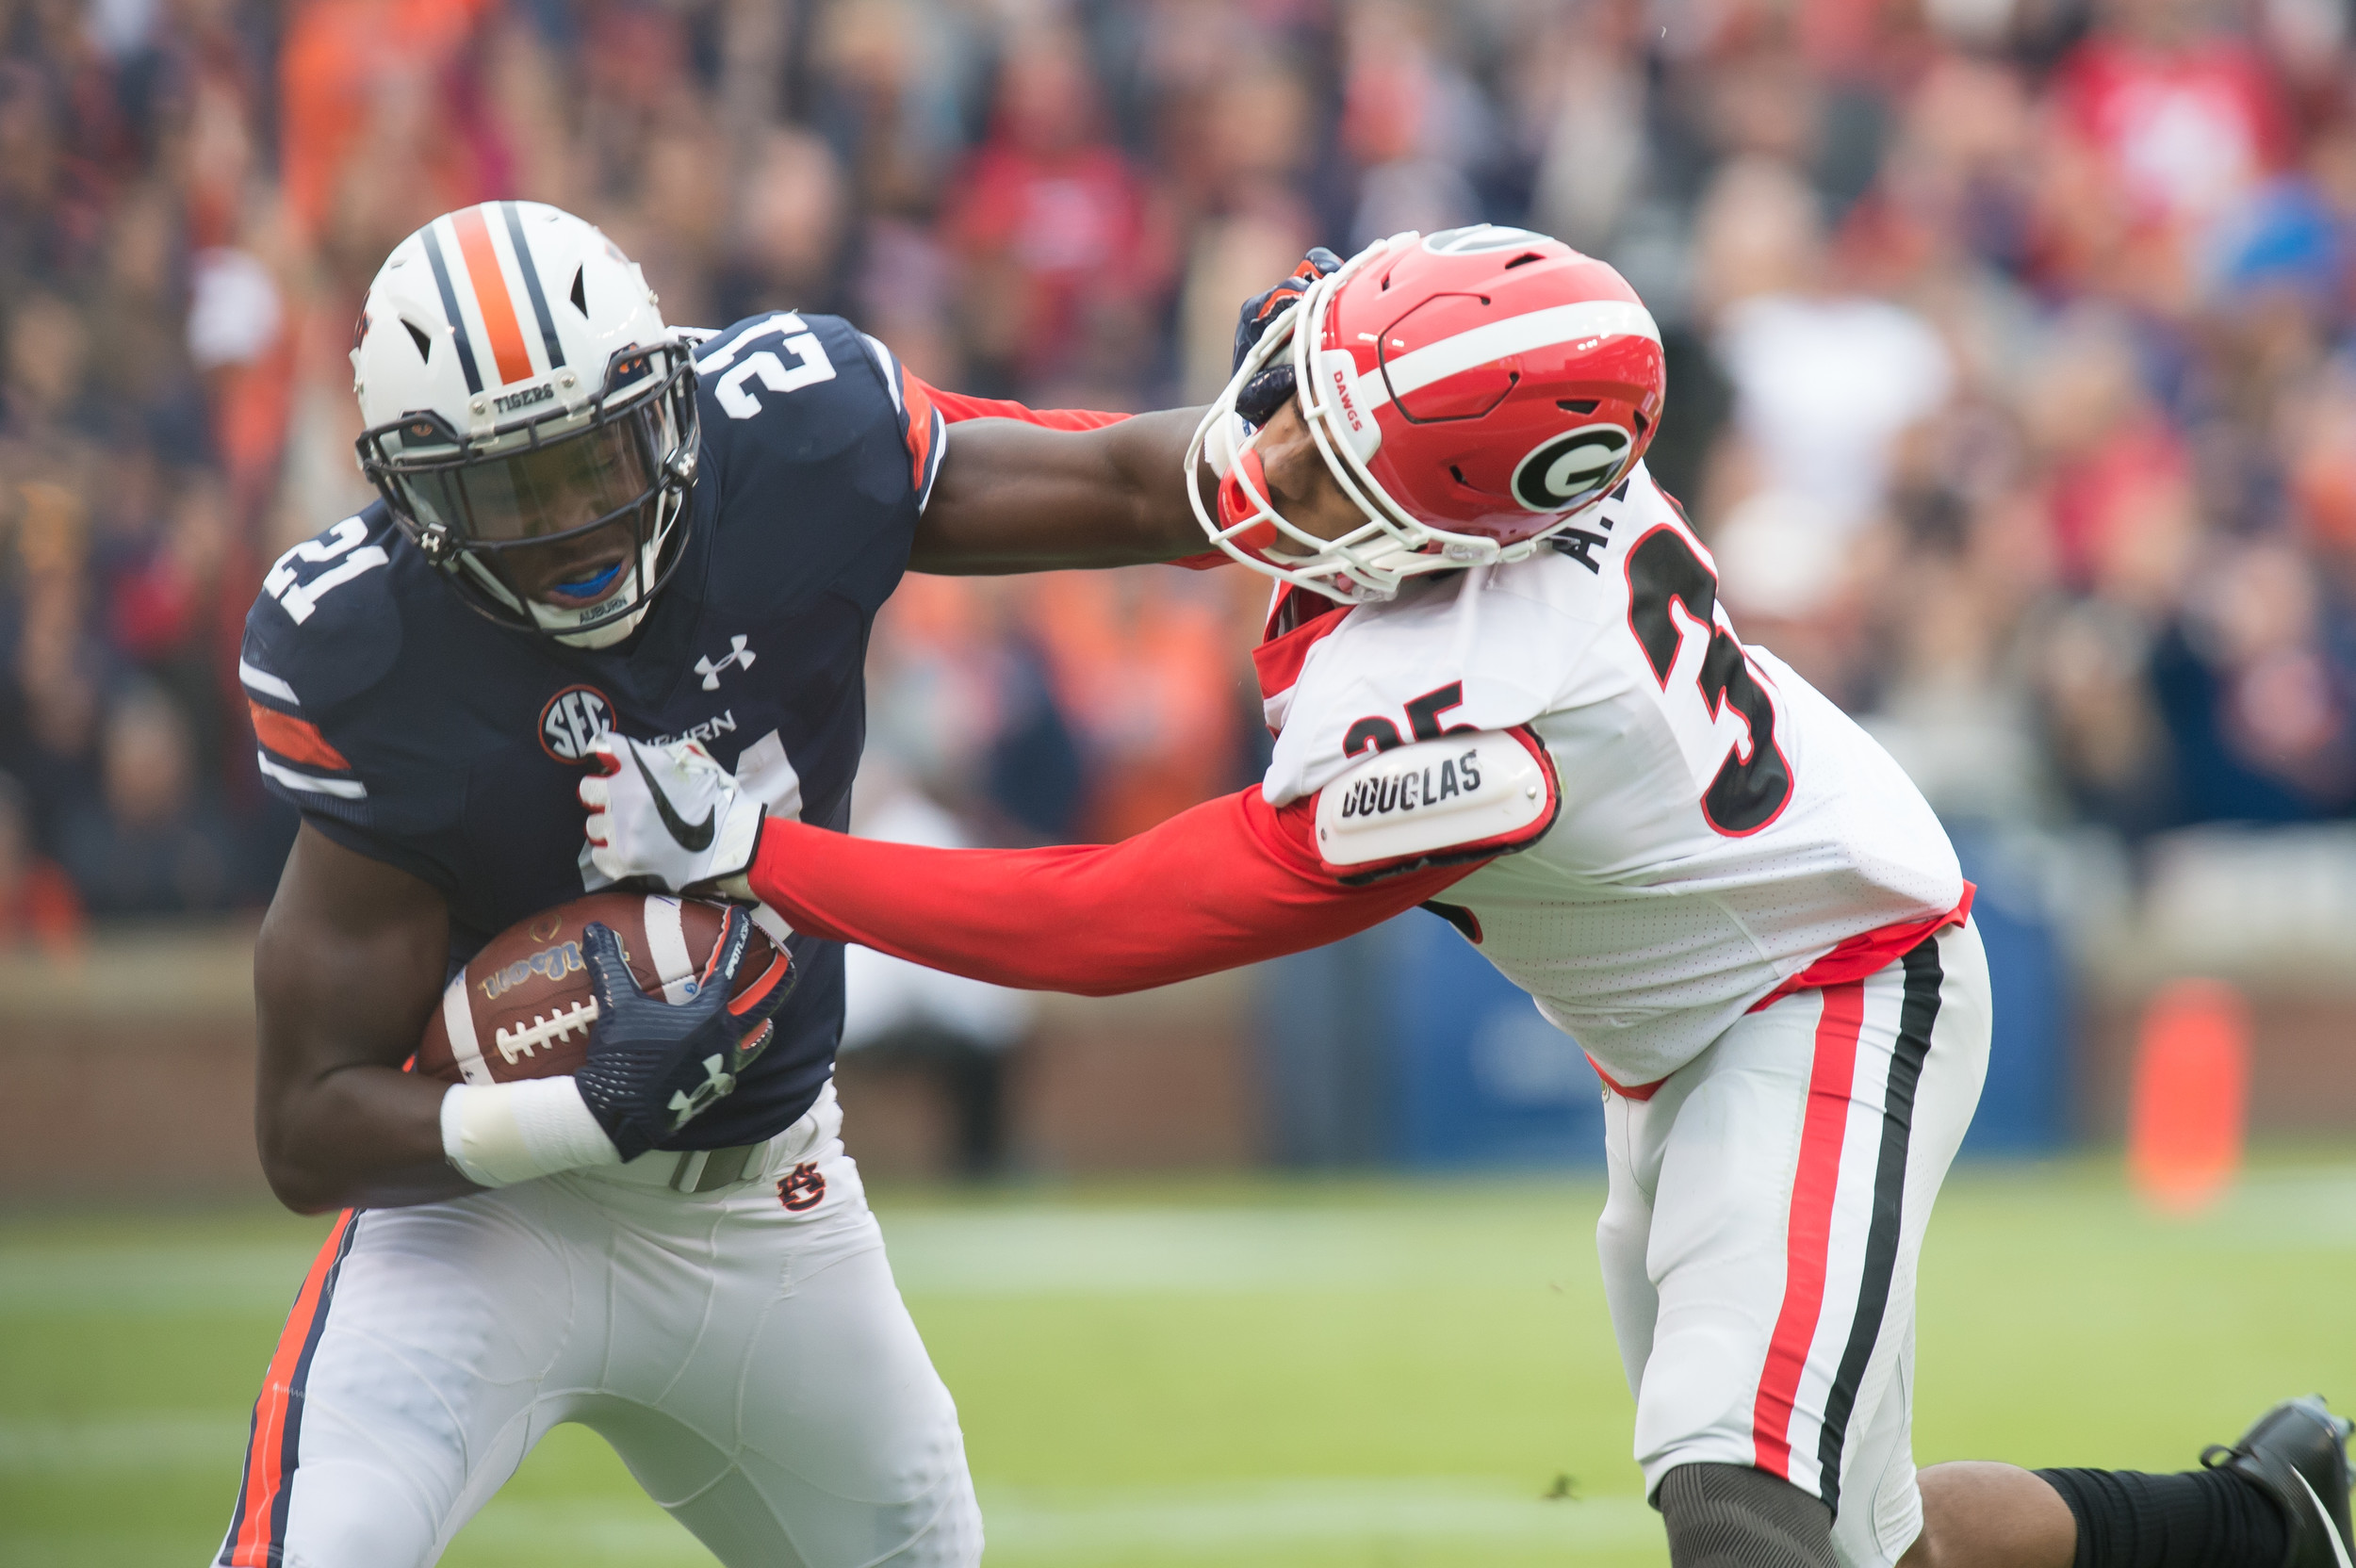 Auburn Tigers running back Kerryon Johnson (21) stiff arms Georgia Bulldogs defensive back Aaron Davis (35) during the first half of Saturday's game, at Jordan-Hare Stadium.